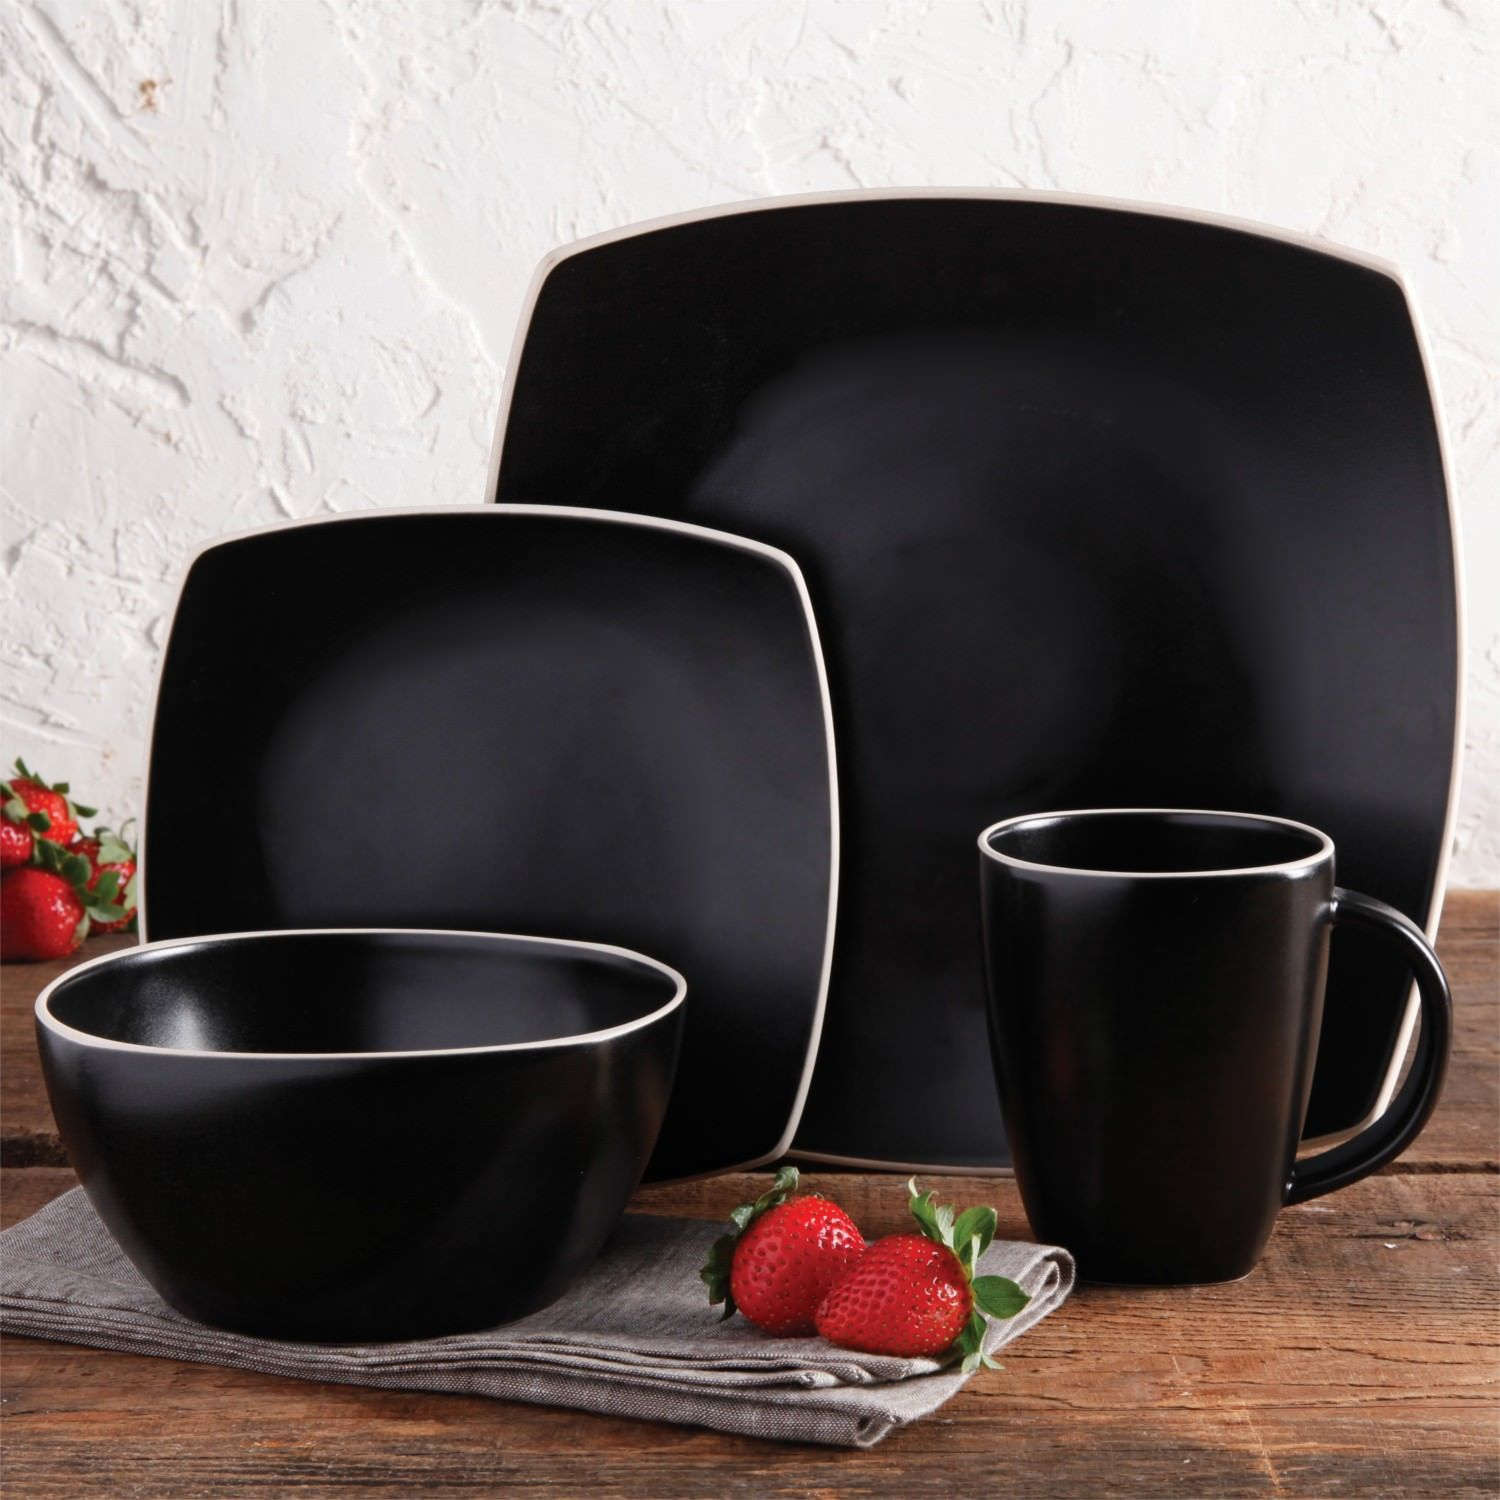 & Black Matte Dinnerware Set Kitchen Dining and 50 similar items